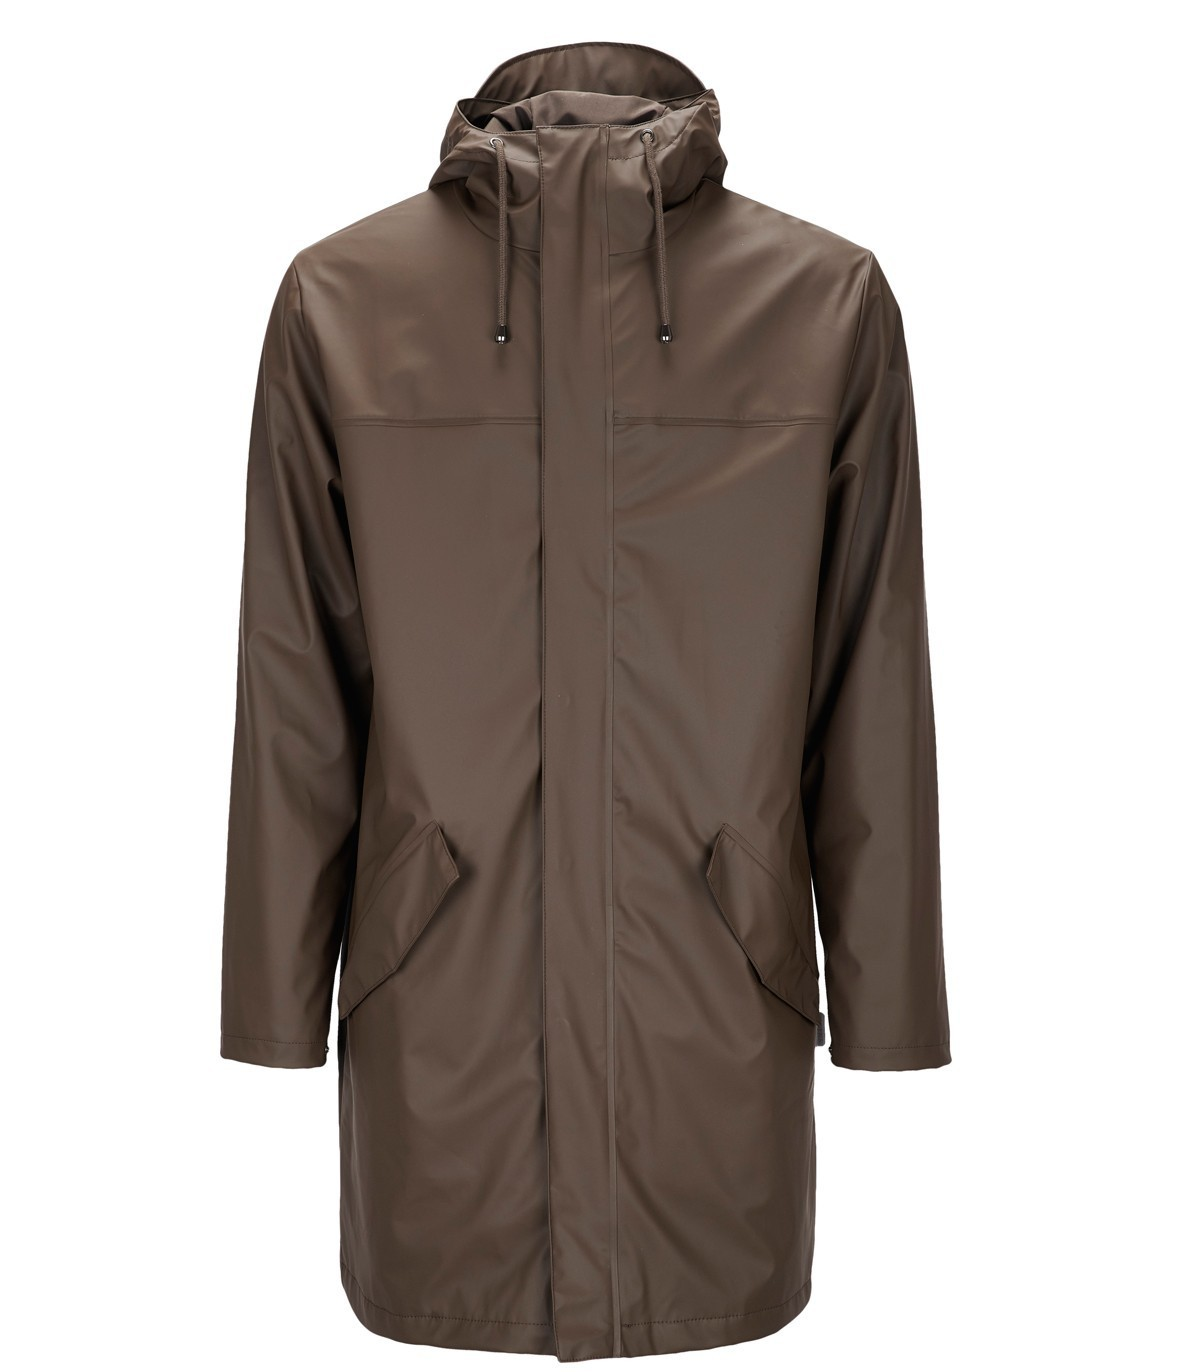 RAINS Themal collectie Alpine Jacket Brown @ LOVE FOR RAIN.NL